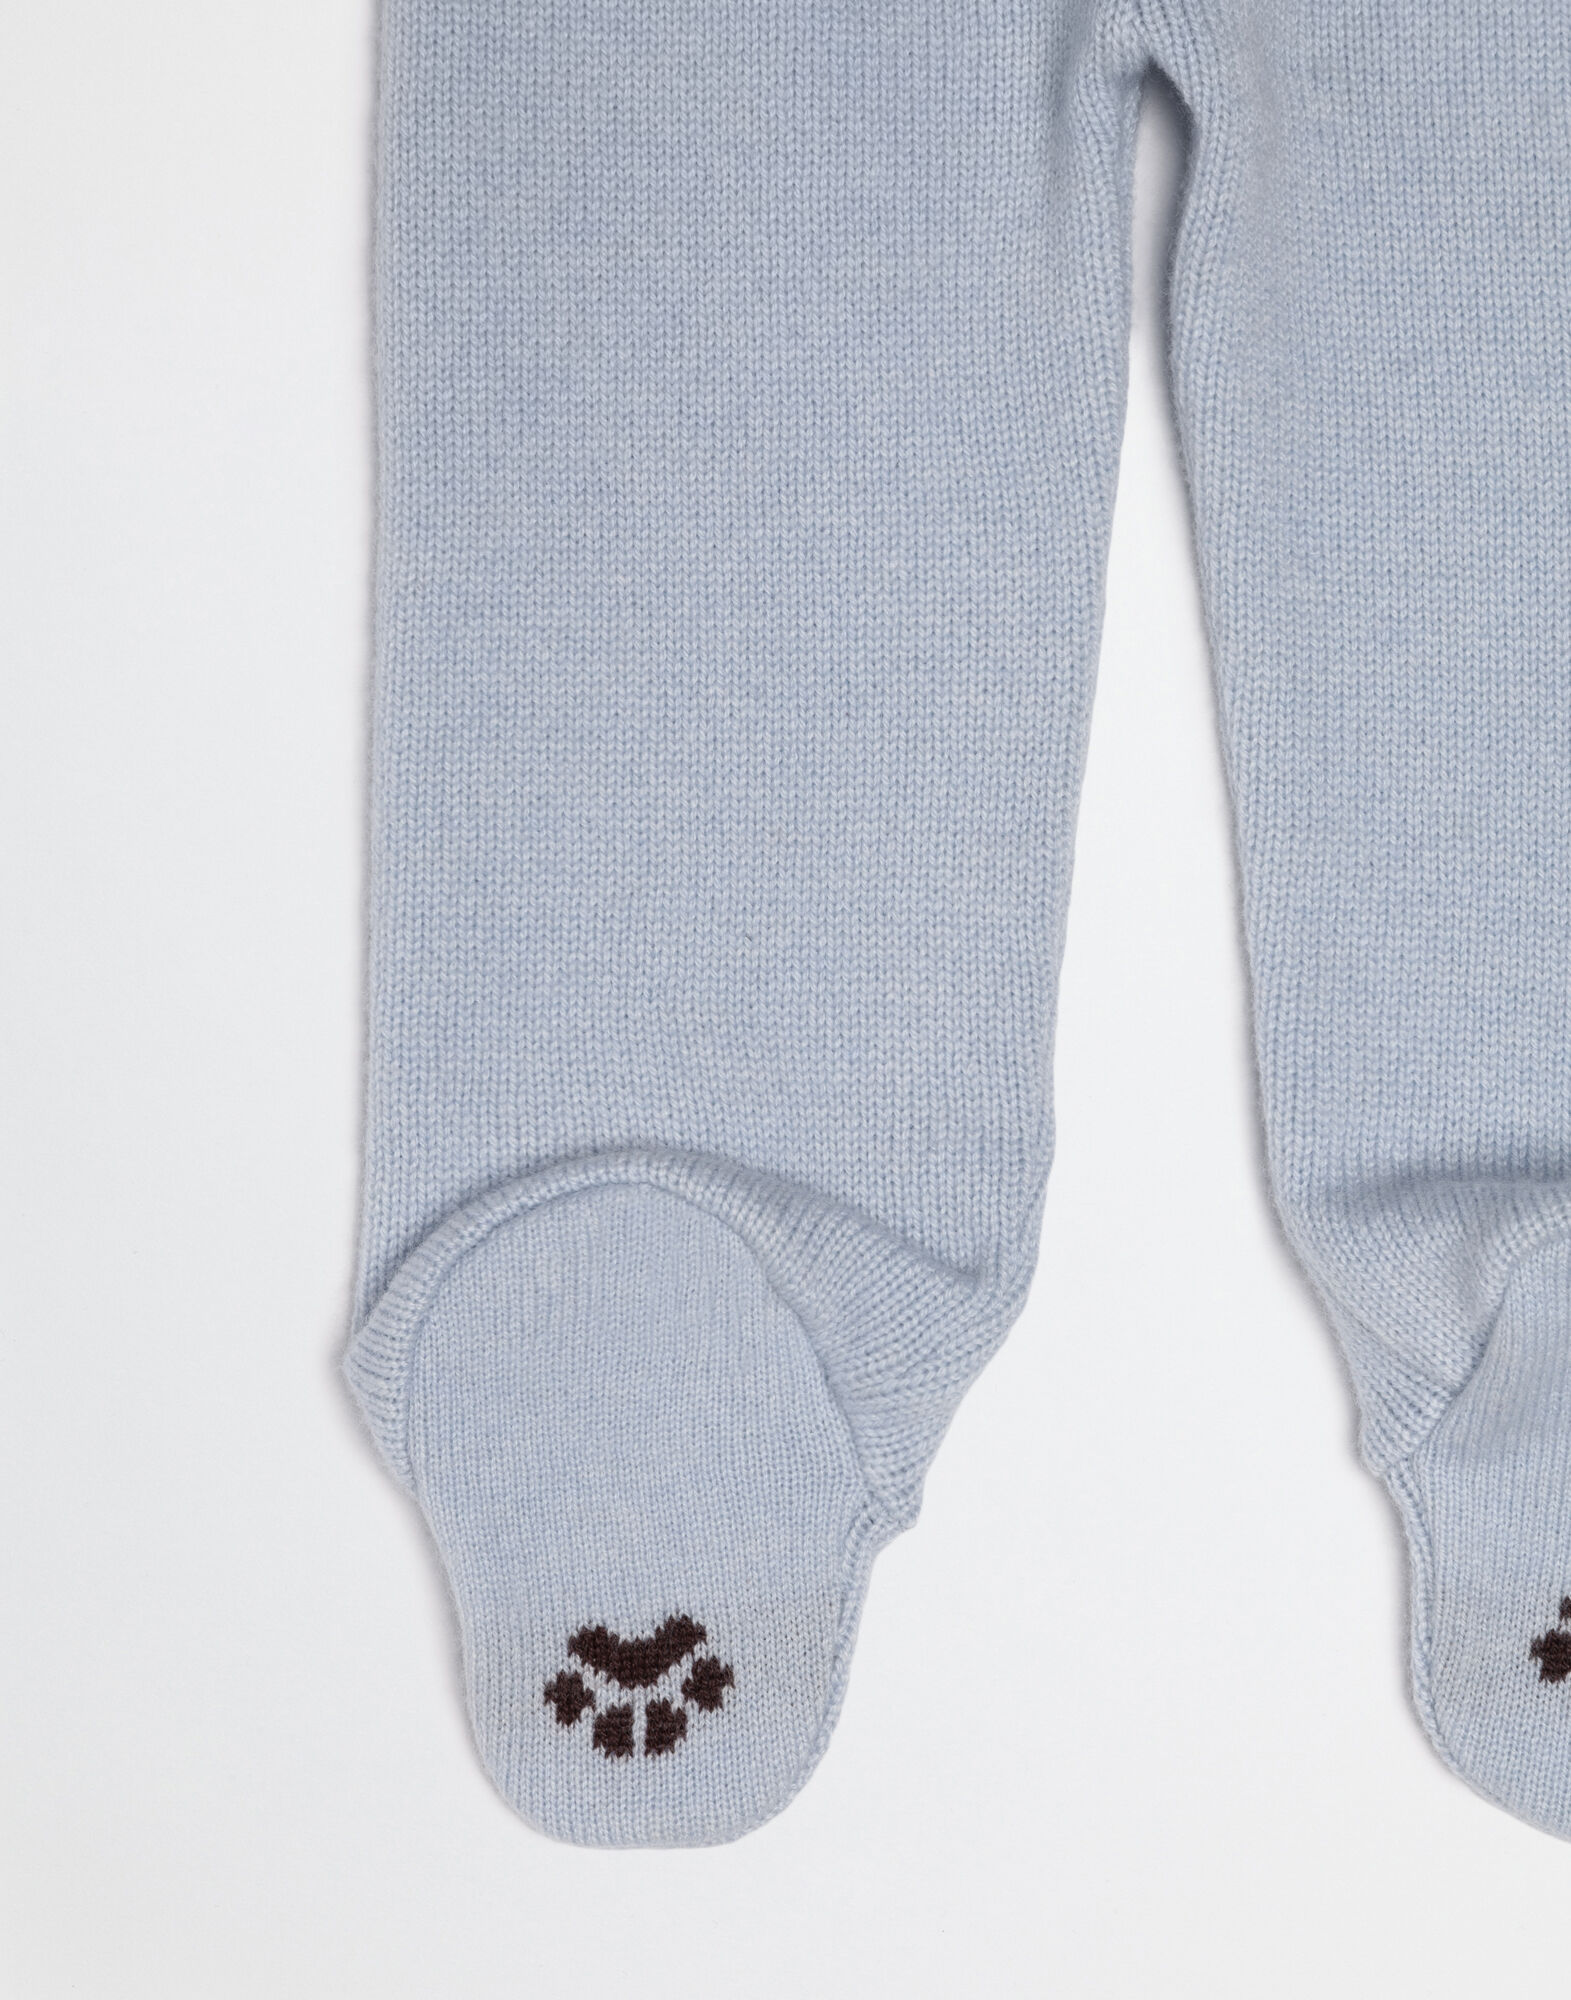 MIMMO THE DOG TROUSERS IN CASHMERE